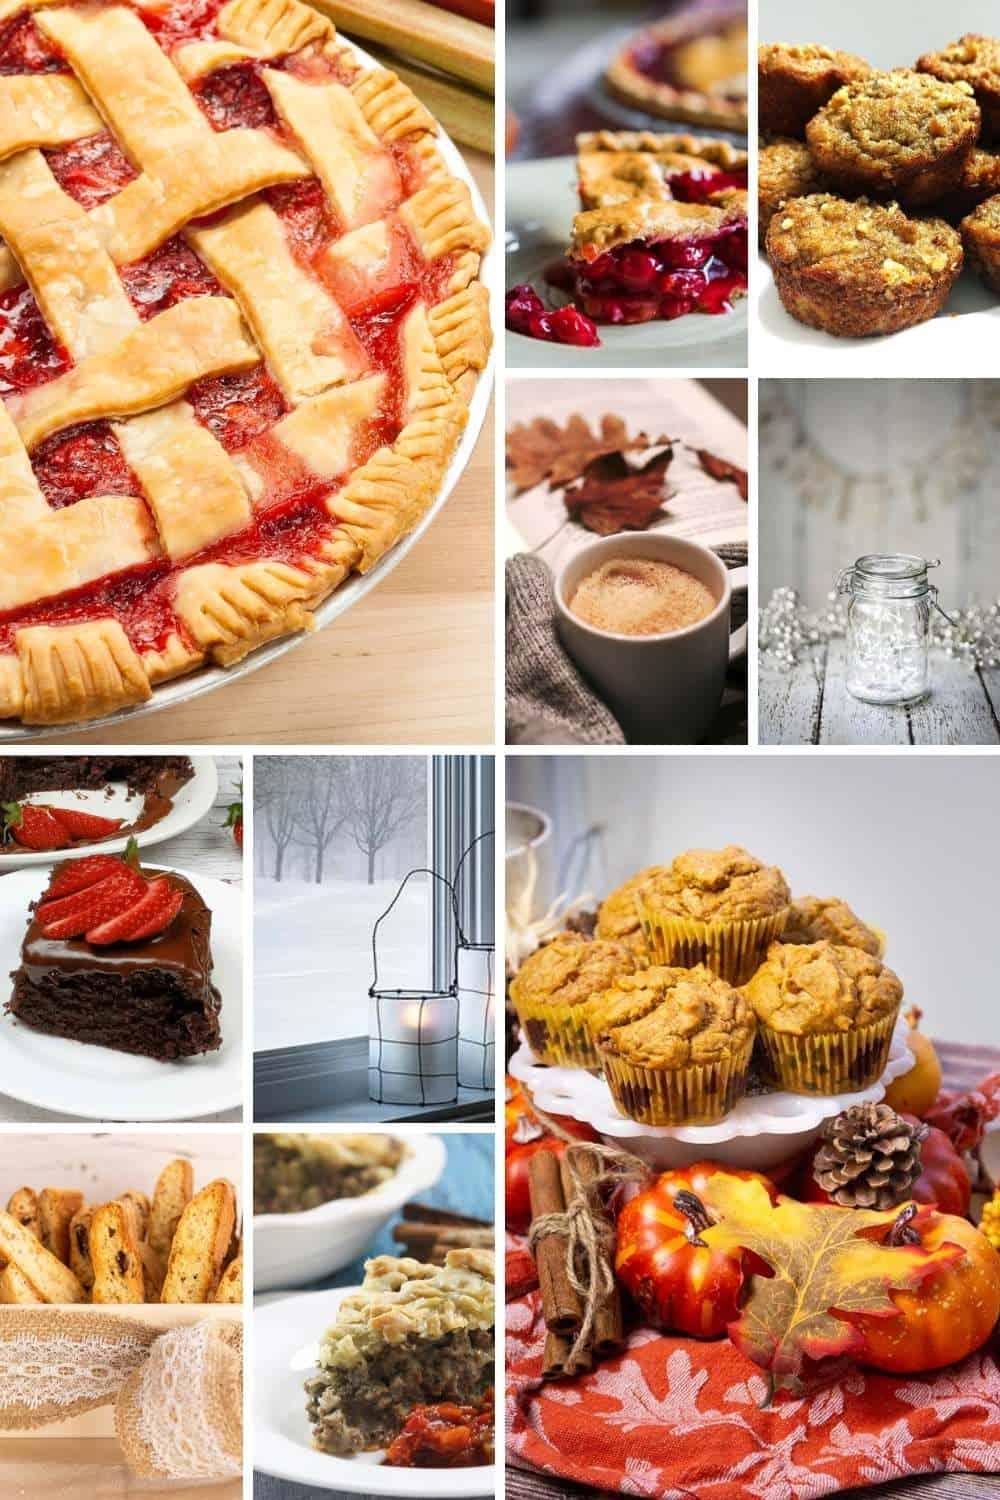 carousel of top posts for 2020 includes pies, muffins, coffee mugs, fairy lights, candles, tourtiere